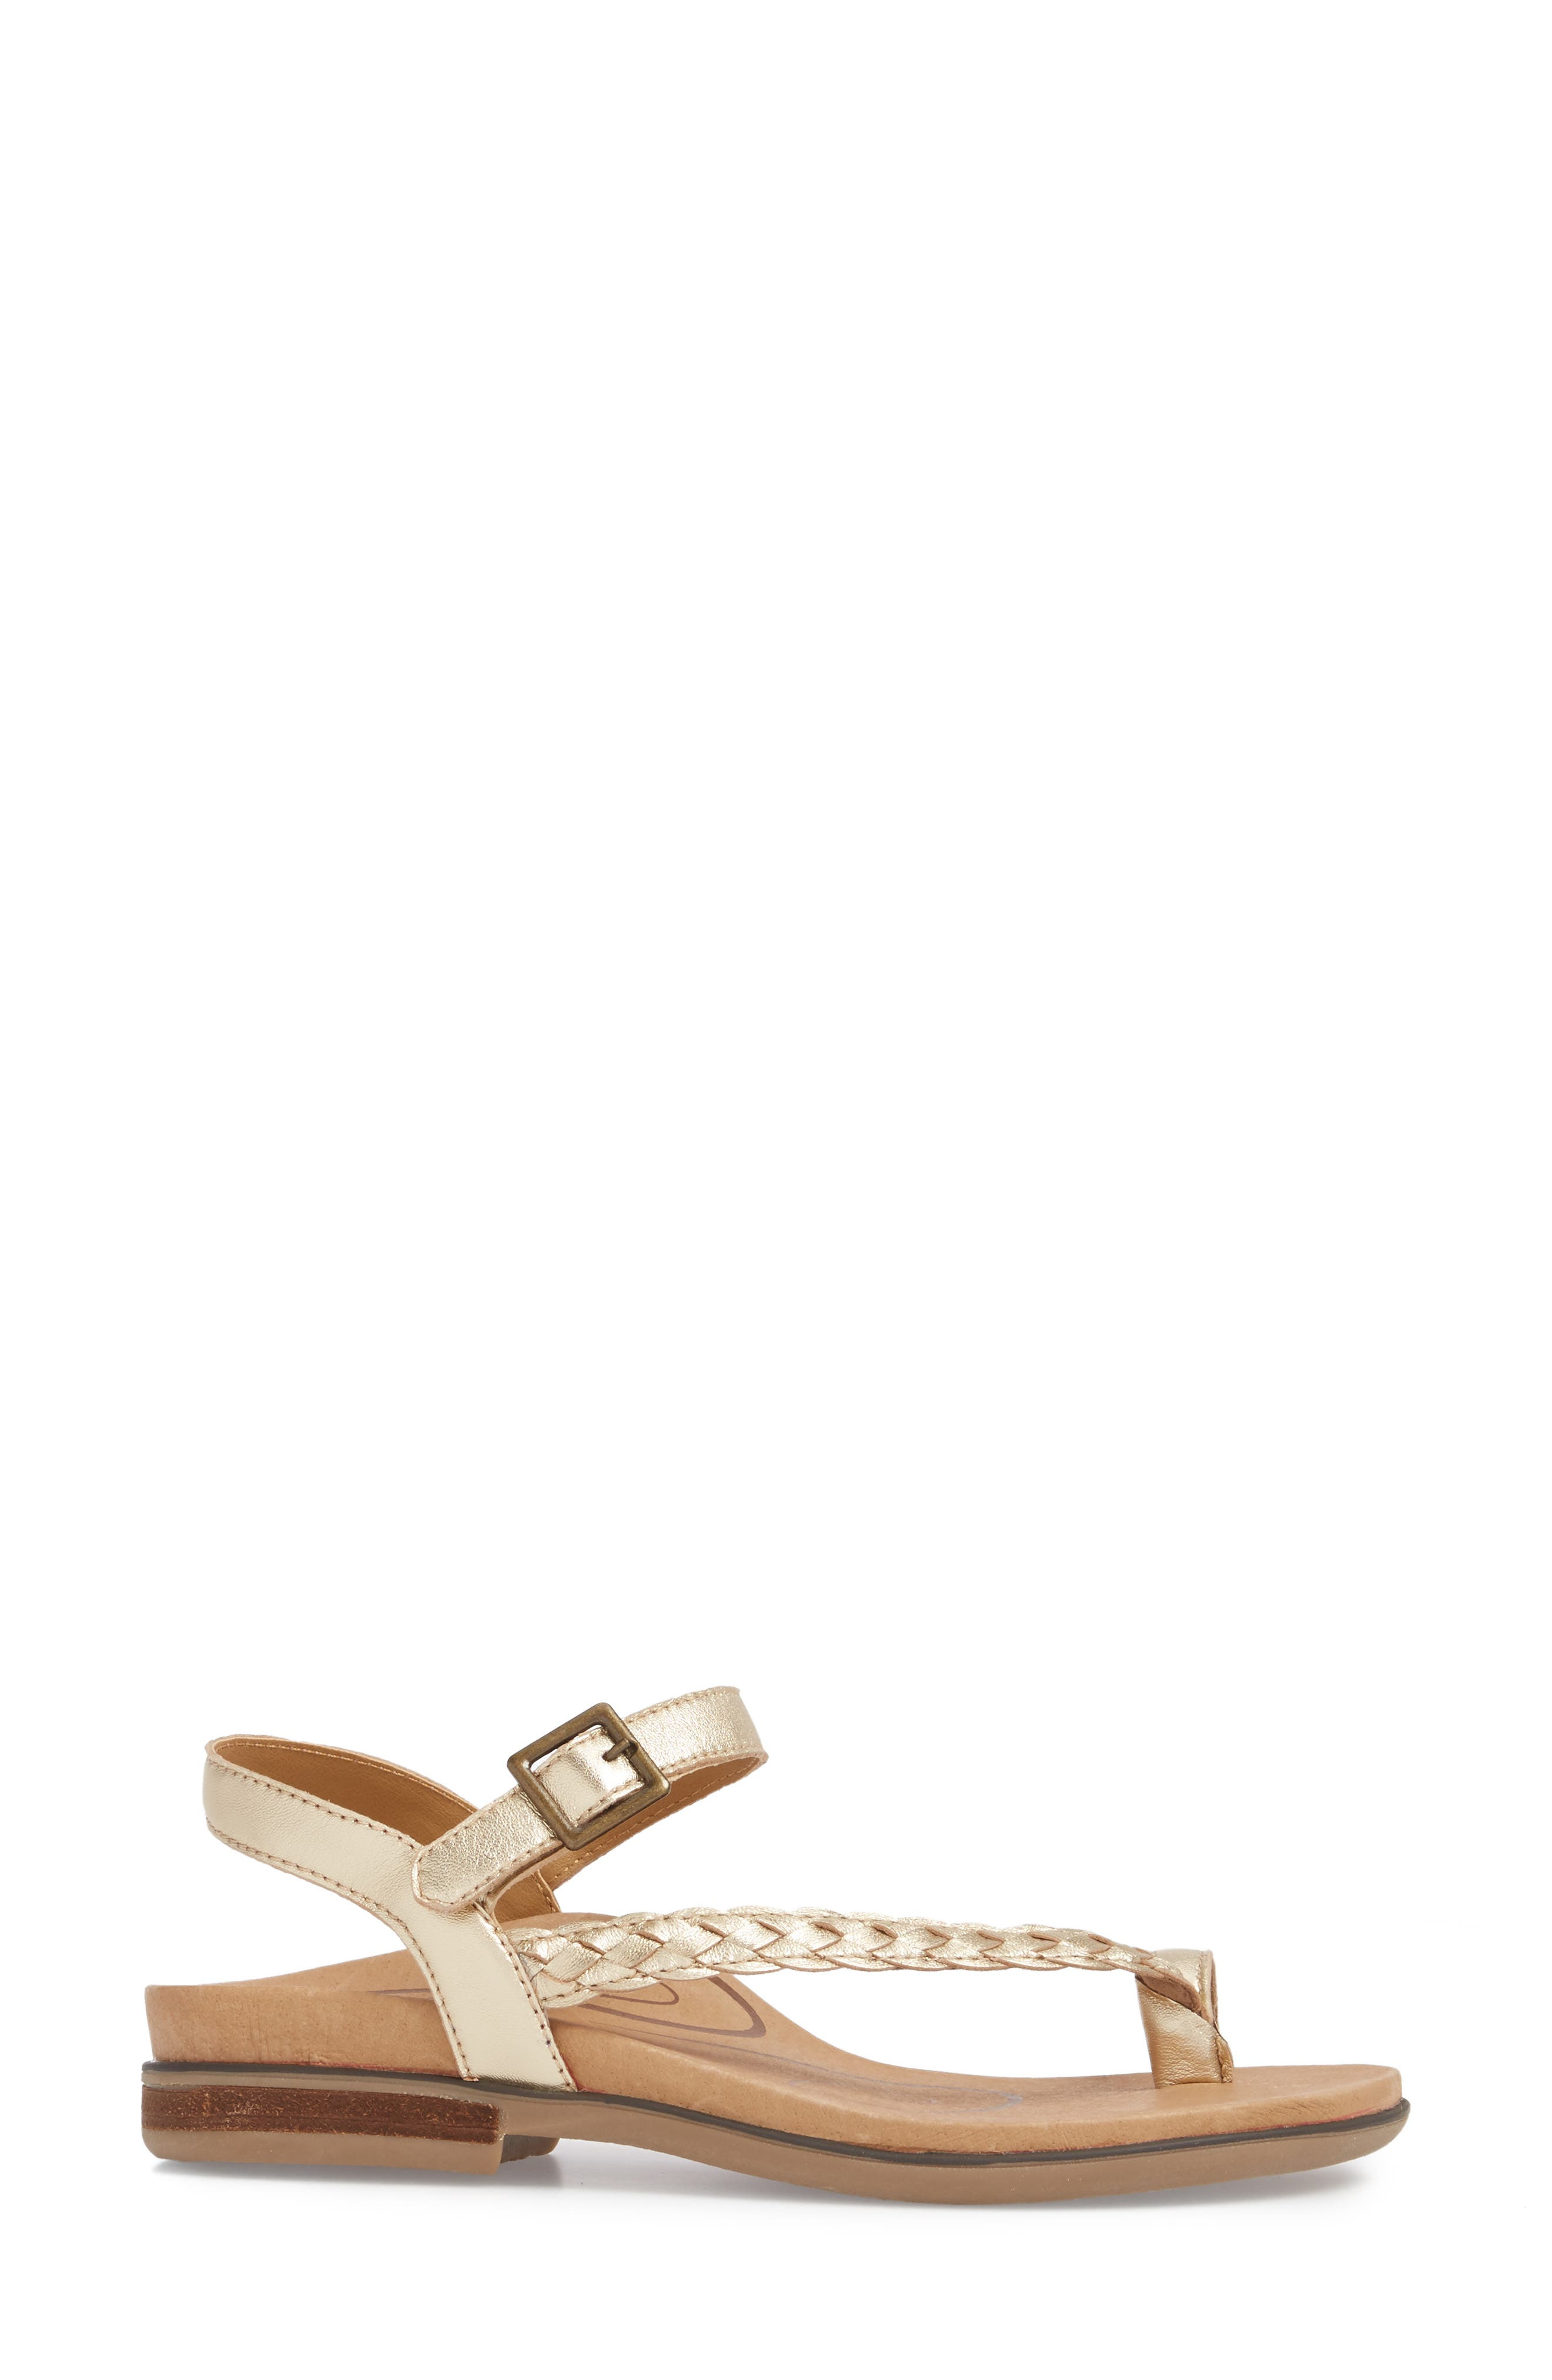 Evie Braided Strap Sandal,                             Alternate thumbnail 3, color,                             Gold Leather